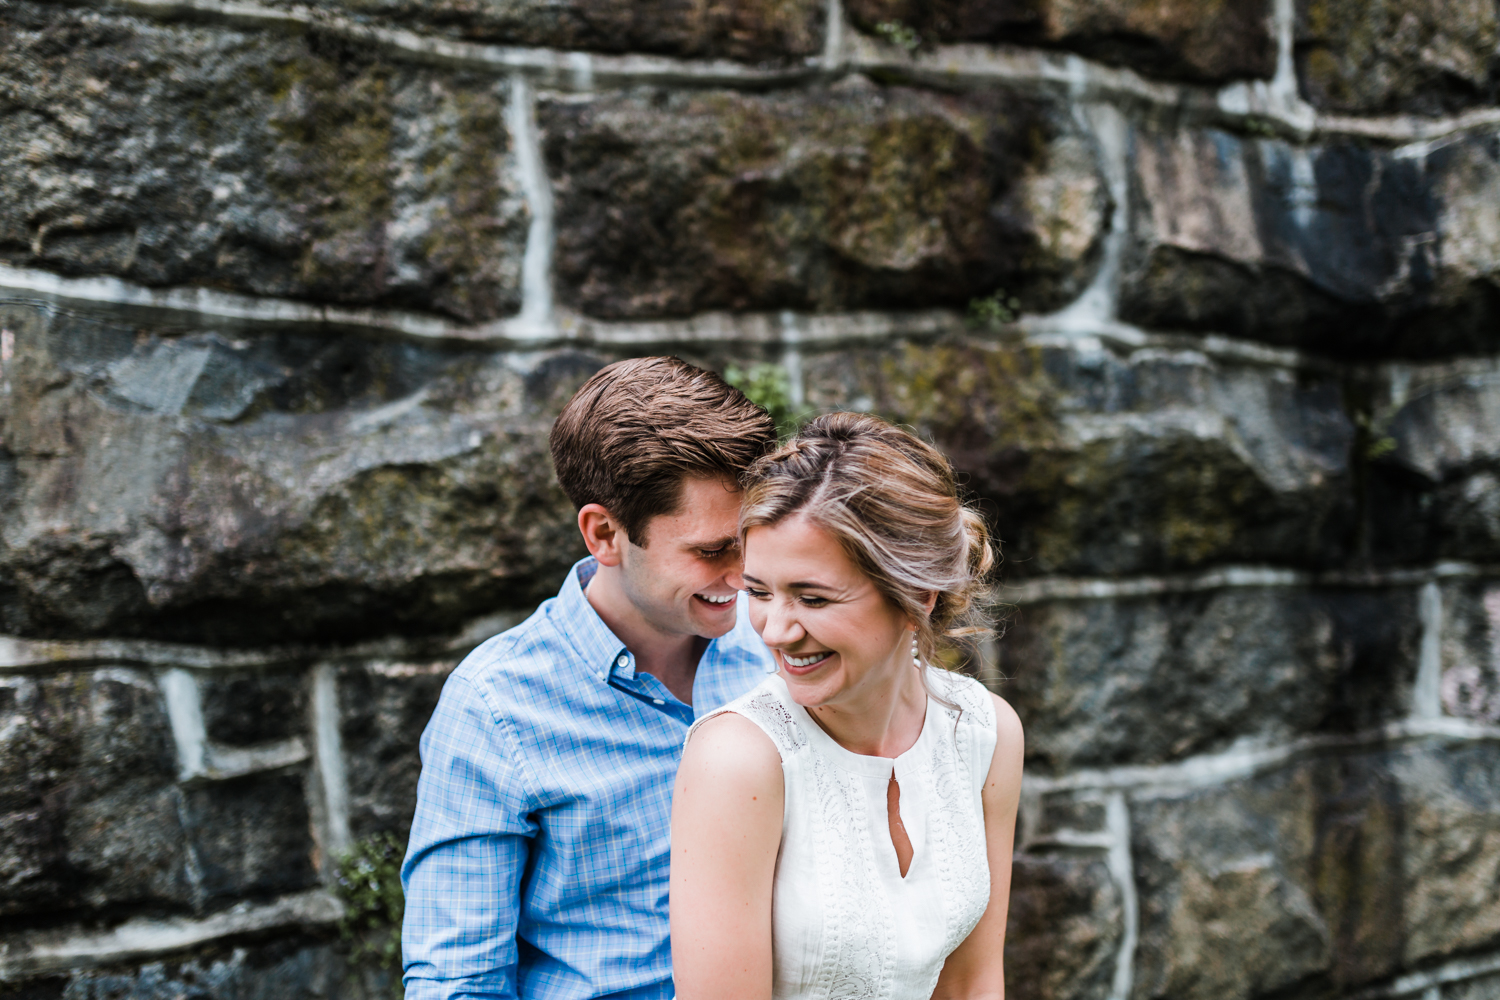 bride and groom laughing together at their engagement session in Ellicott City, MD